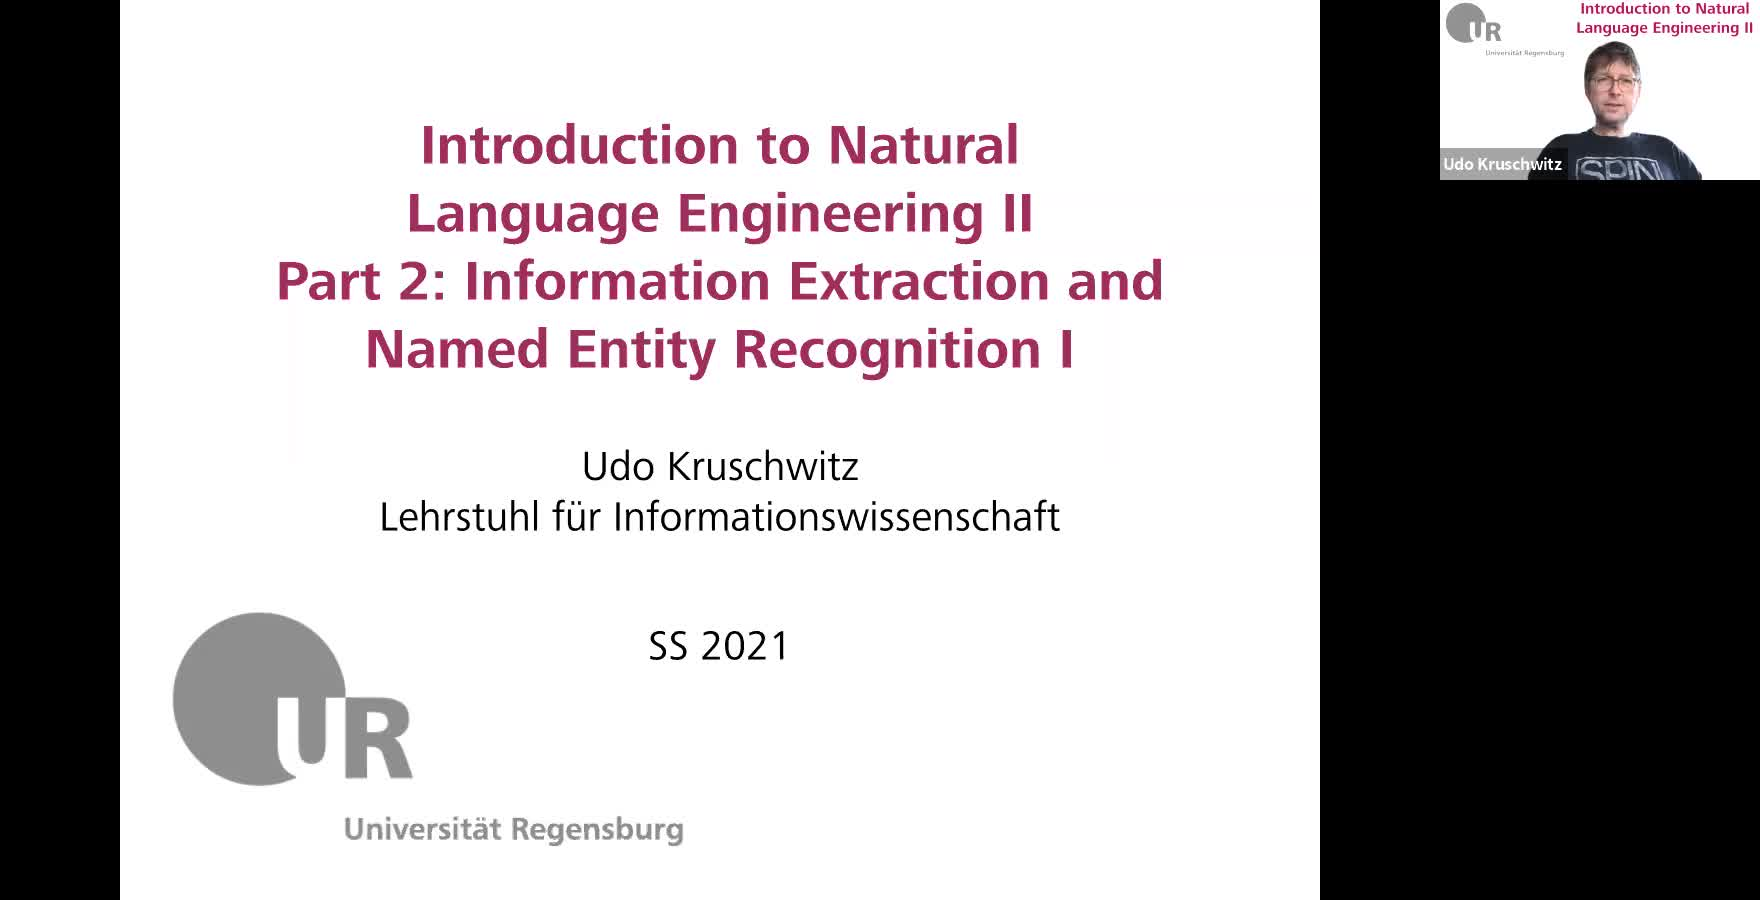 Introduction to Natural Language Engineering 2 / Informationslinguistik 2 - Lecture 2 (Information Extraction and Named Entity Recognition I / Informationsextraktion und Extraktion von Entitäten I)